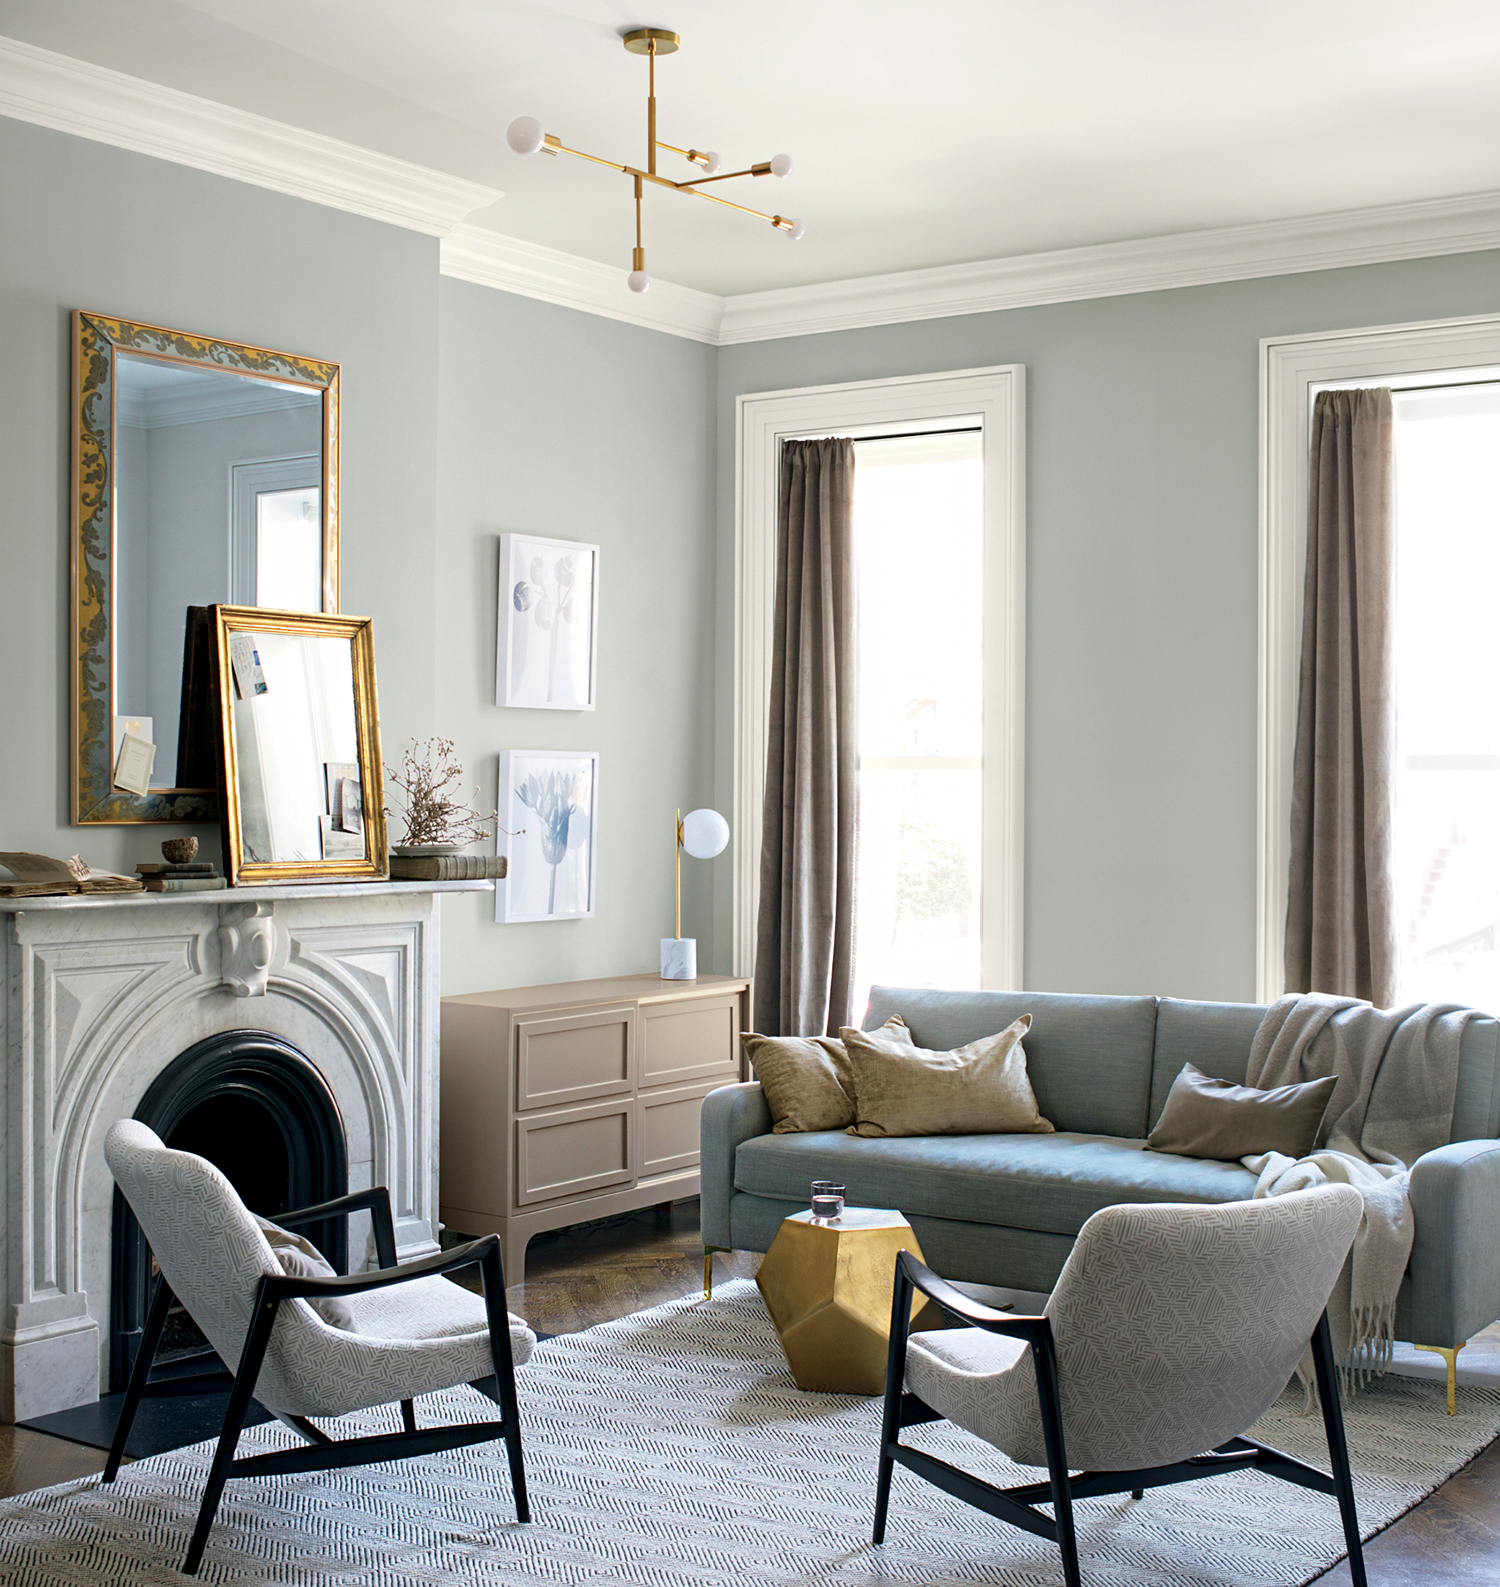 Home Design Ideas For Seniors: These Are The Most Popular Living Room Paint Colors For